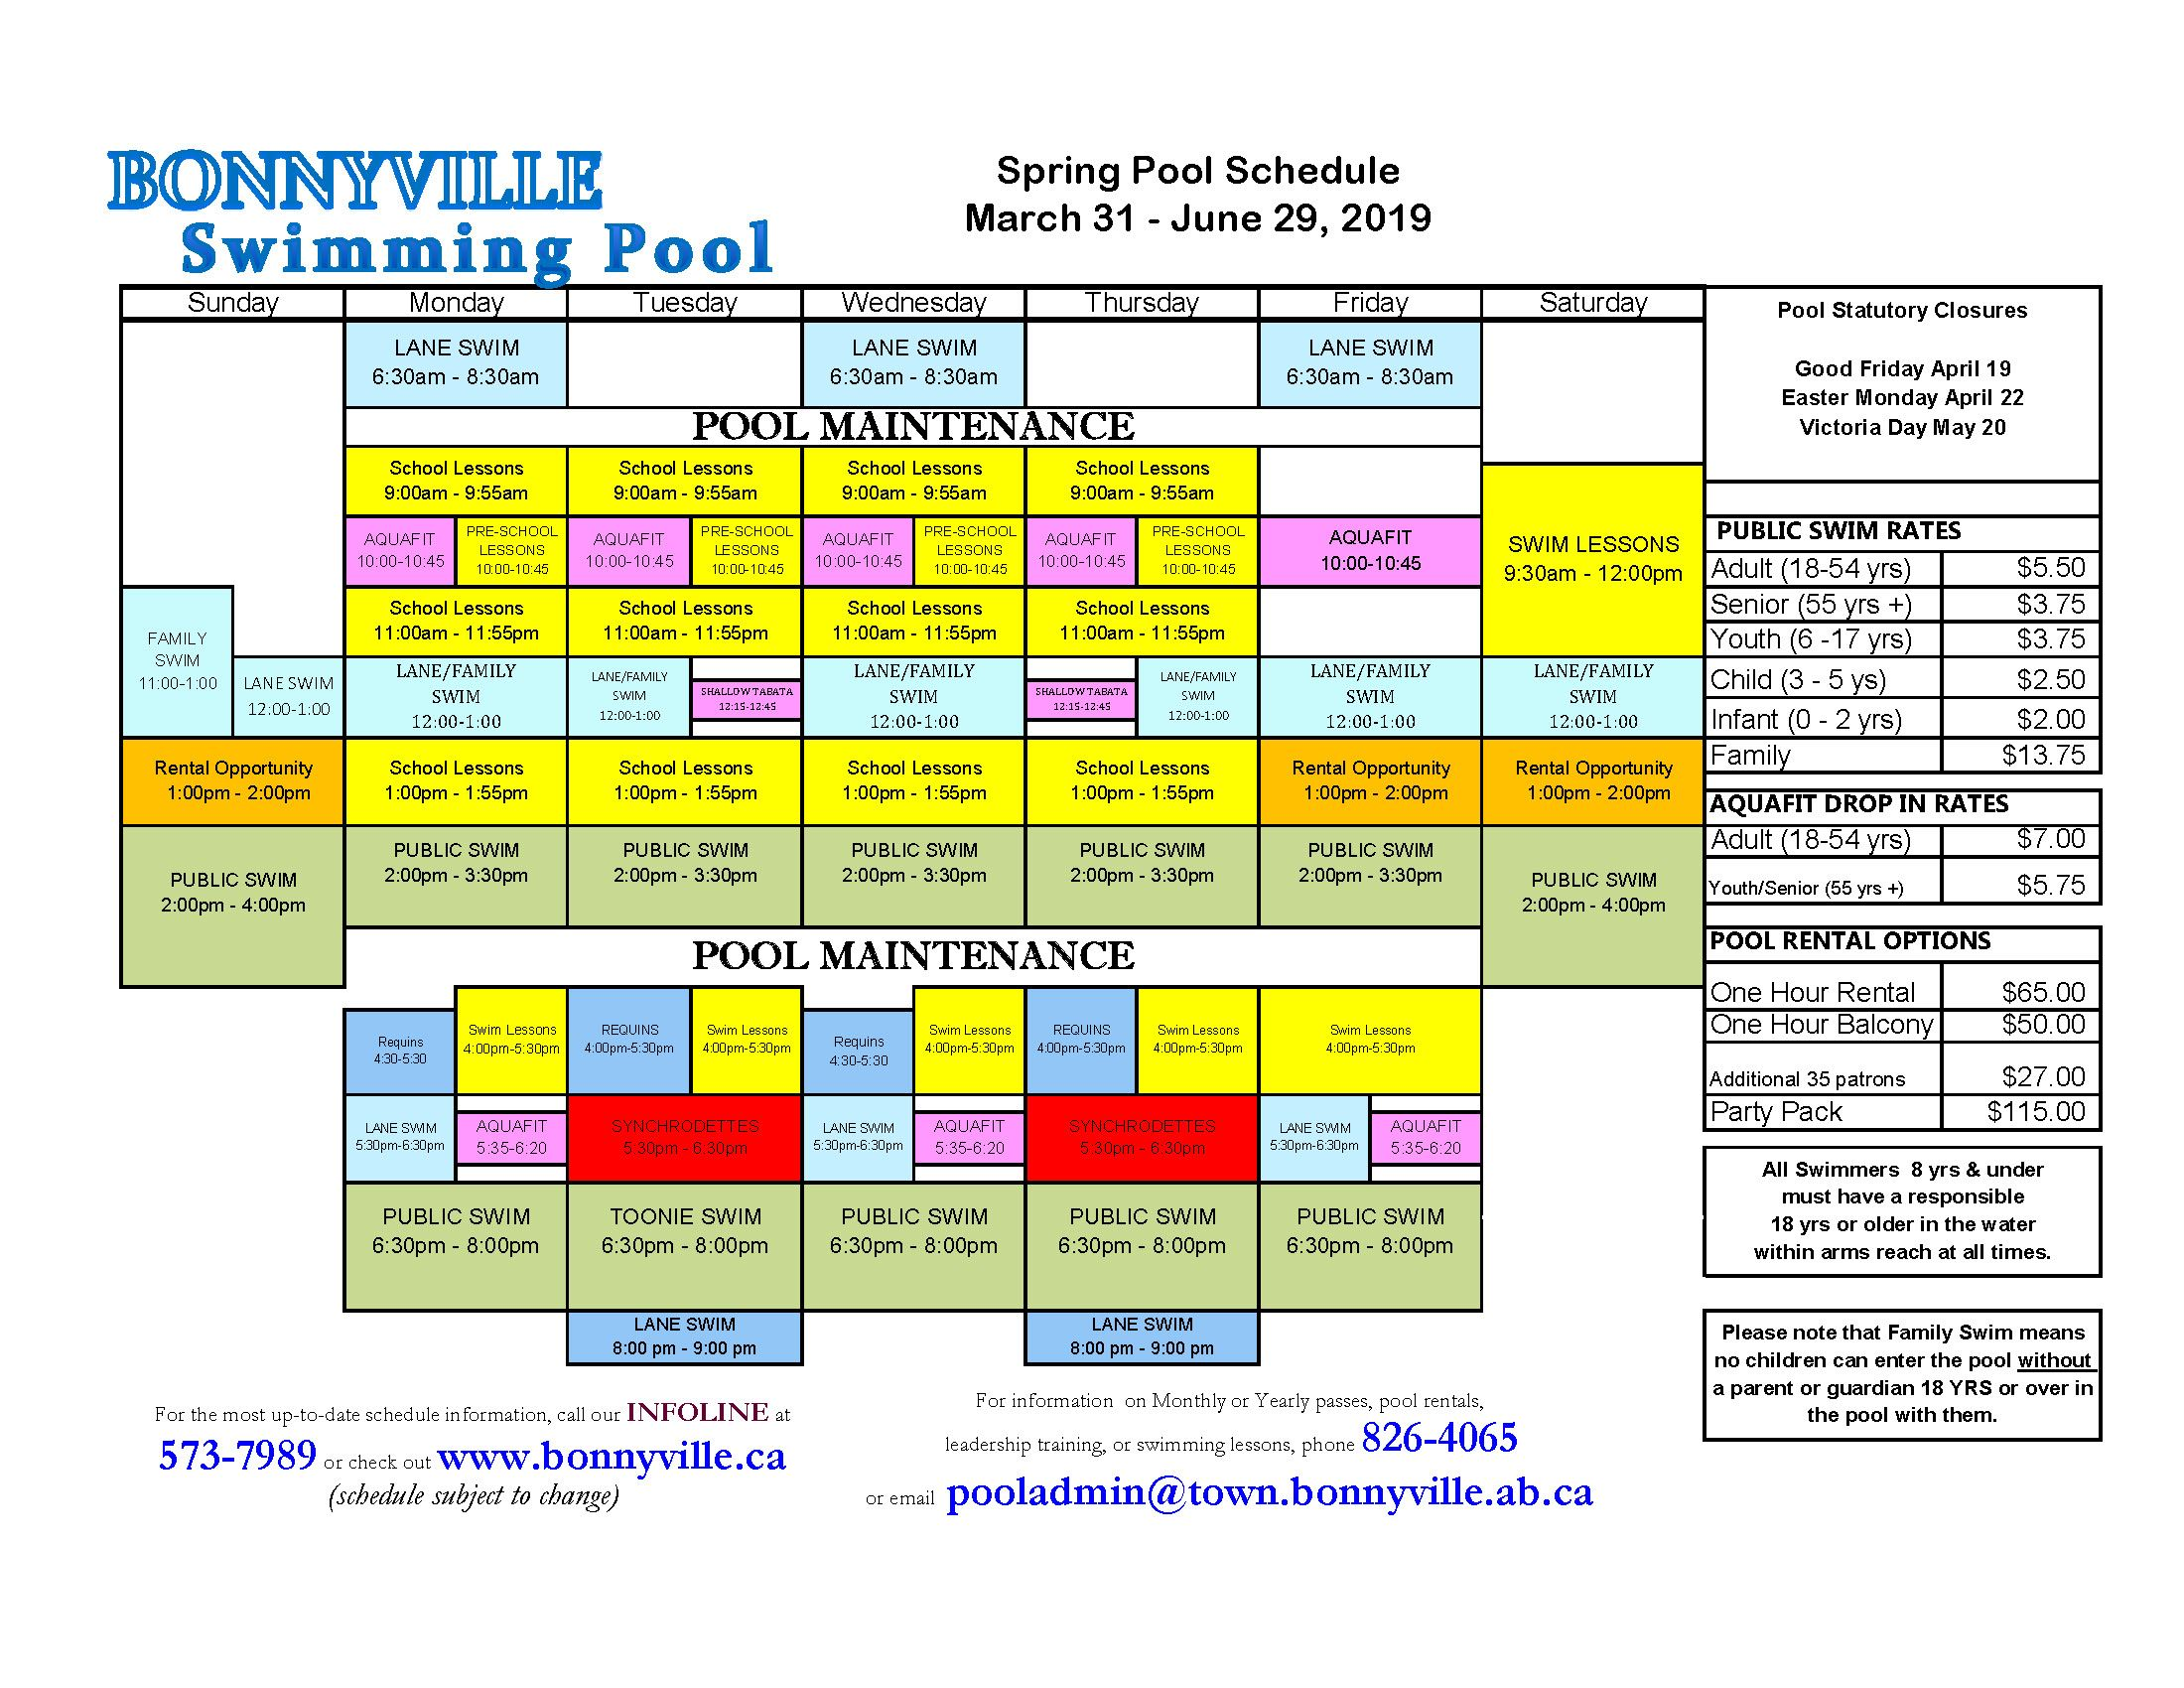 Public Swim Schedule March 31 - June 29, 2019